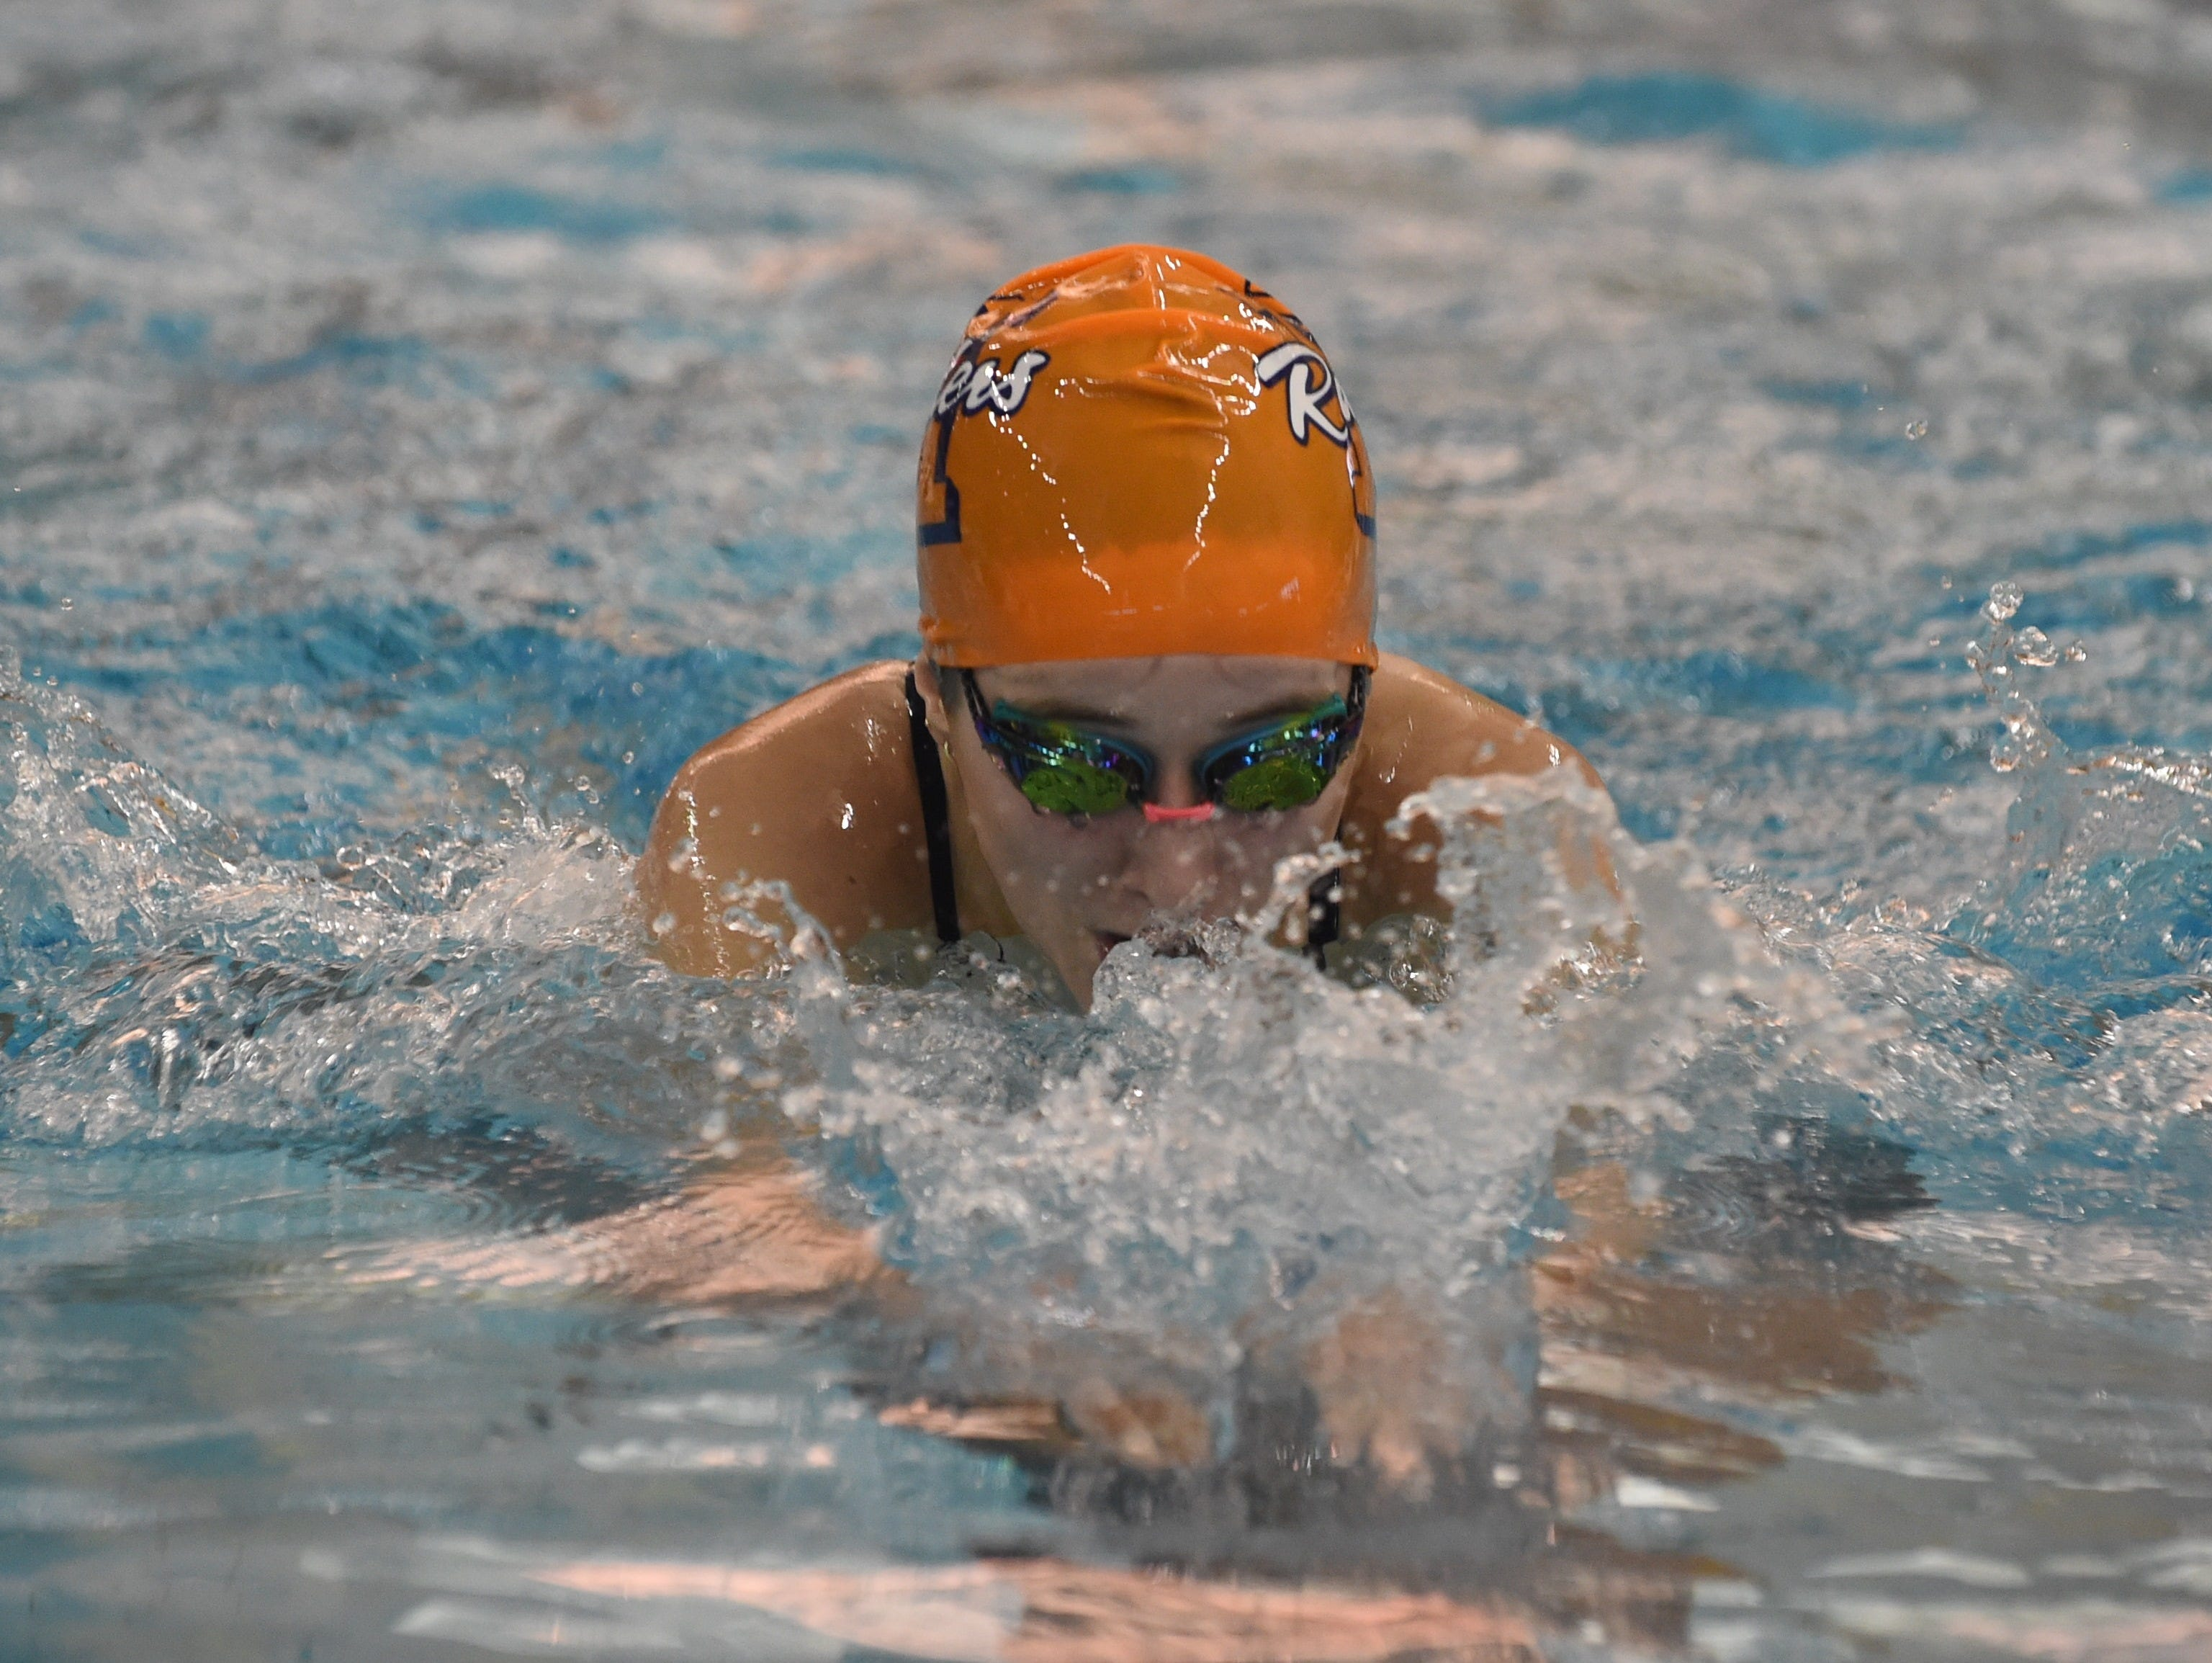 Images from Saturday's North Central Conference Swimming and Diving Championships at Purdue. Madda Dewitt.